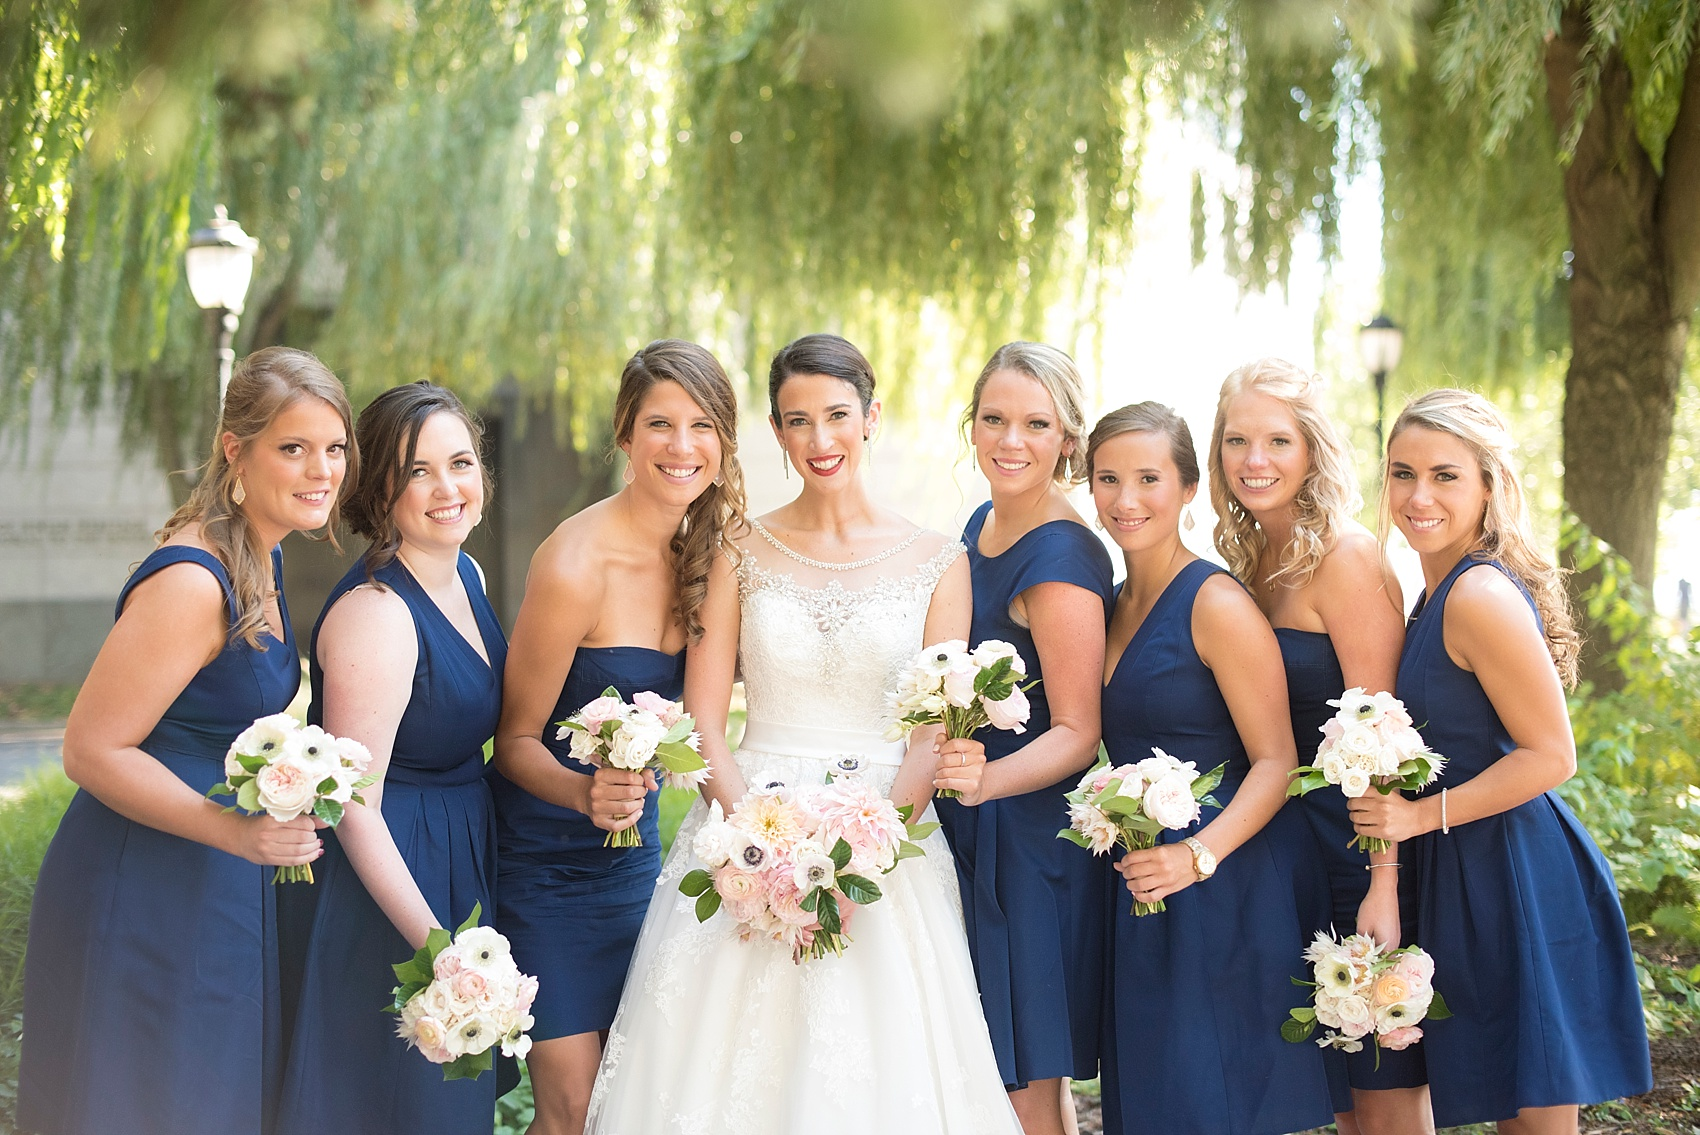 Bridal Party Photo By Mikkel Paige Photography NYC Wedding Photographer Bridesmaids In J Crew